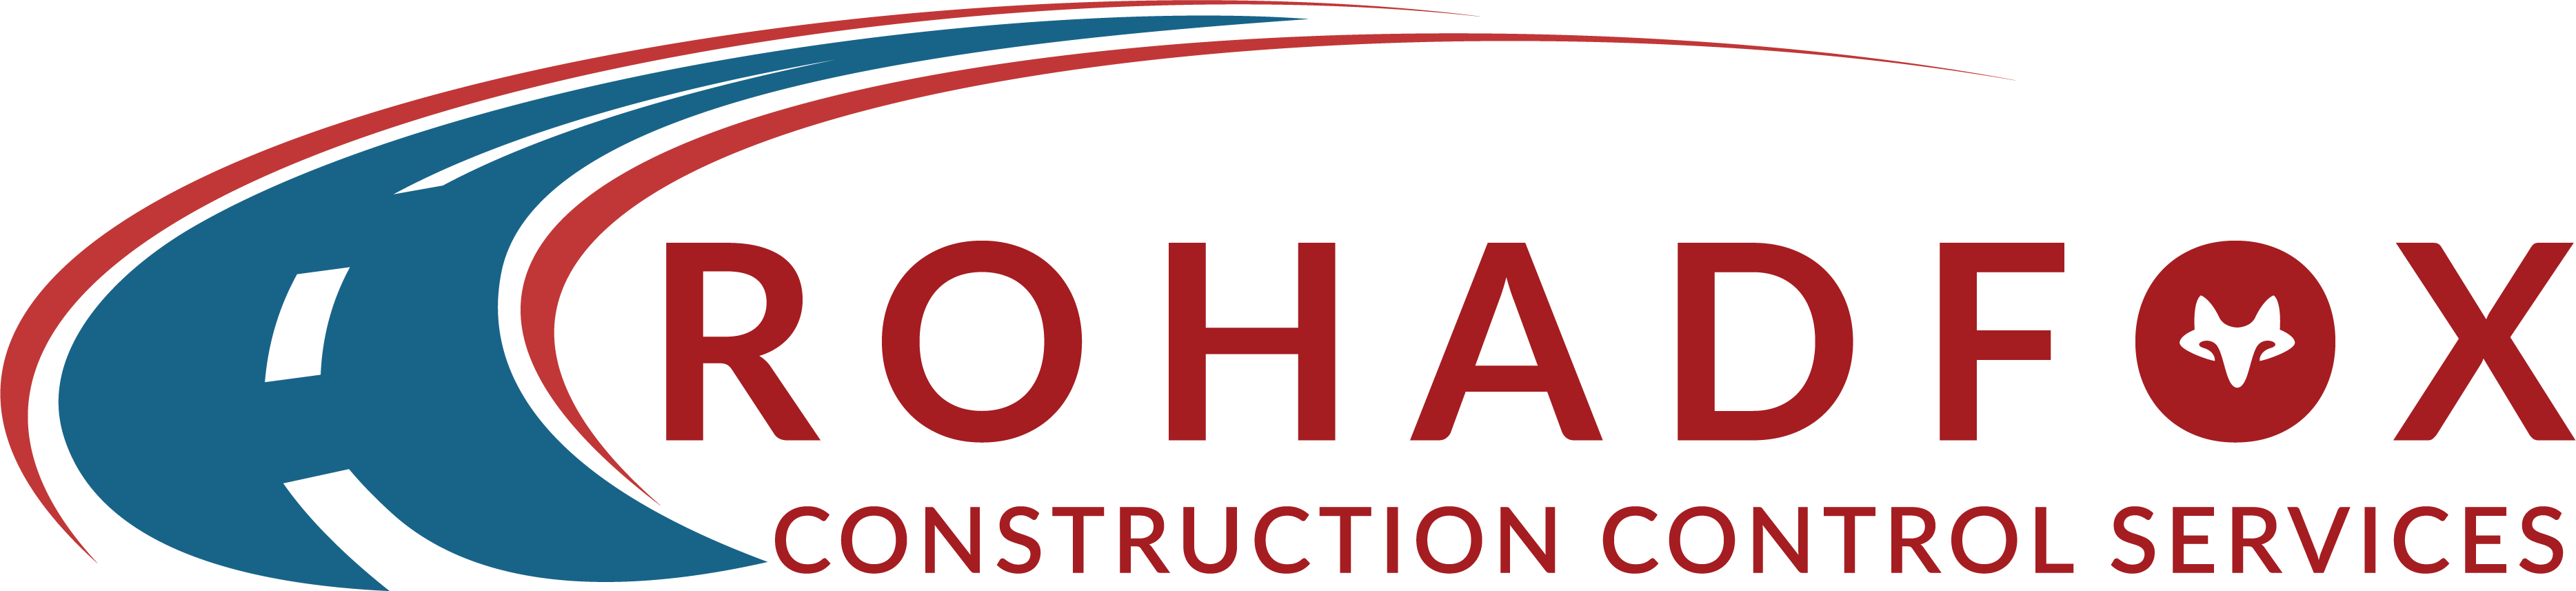 Rohadfox Construction Control Services Corporation Company Logo